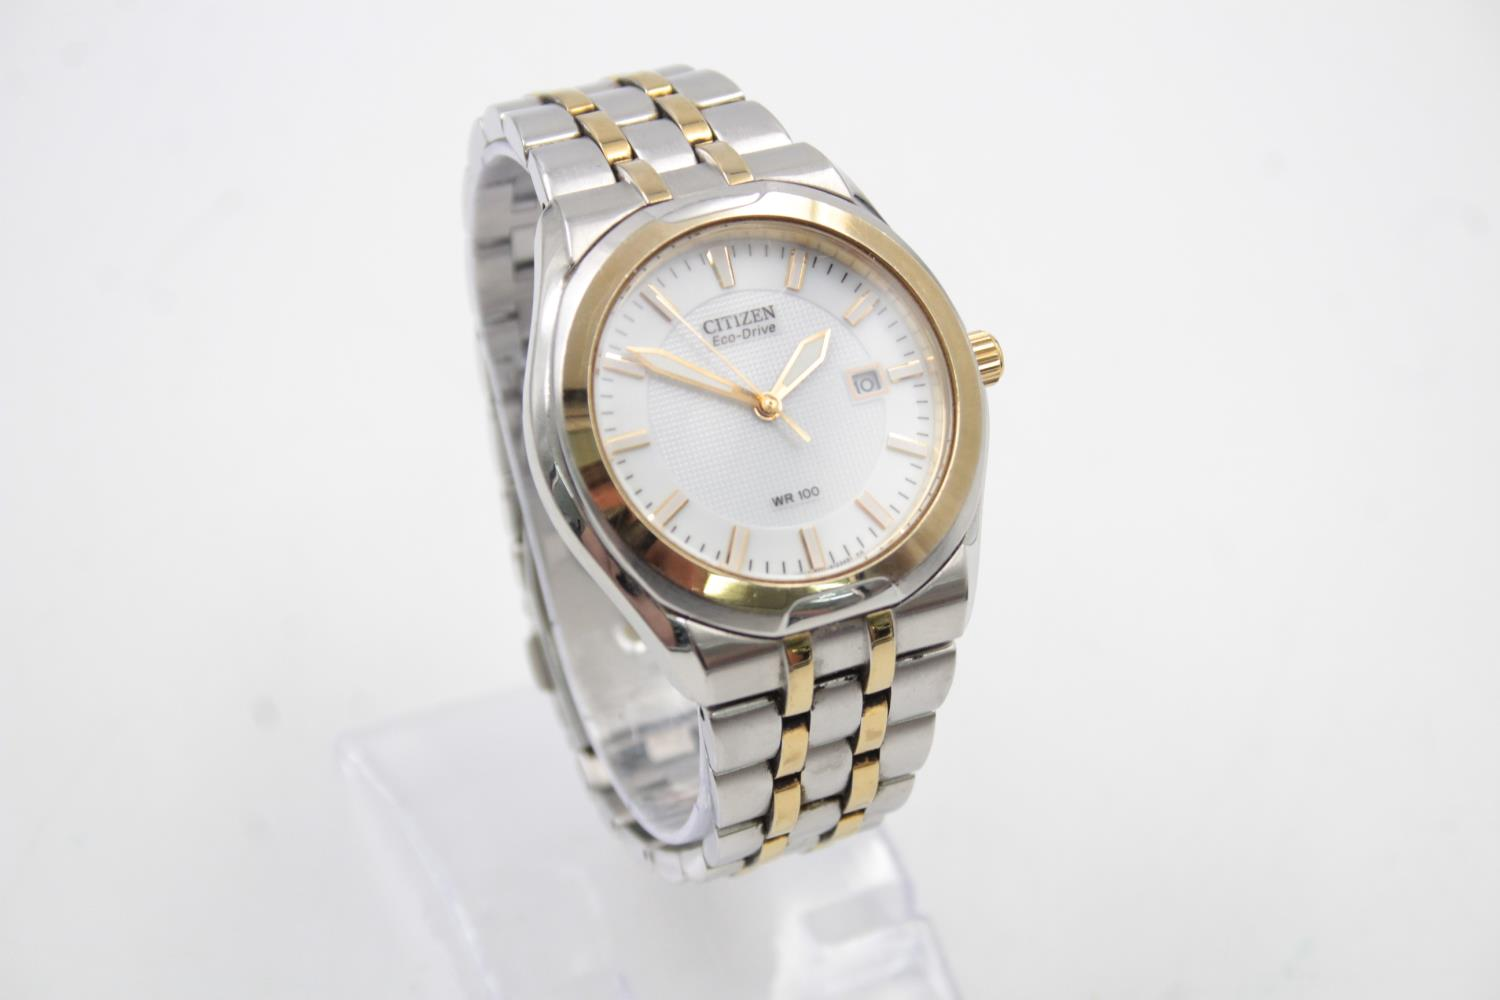 Gents CITIZEN Eco-Drive WR100 Two Tone WRISTWATCH WORKING in Original Box - Image 2 of 7